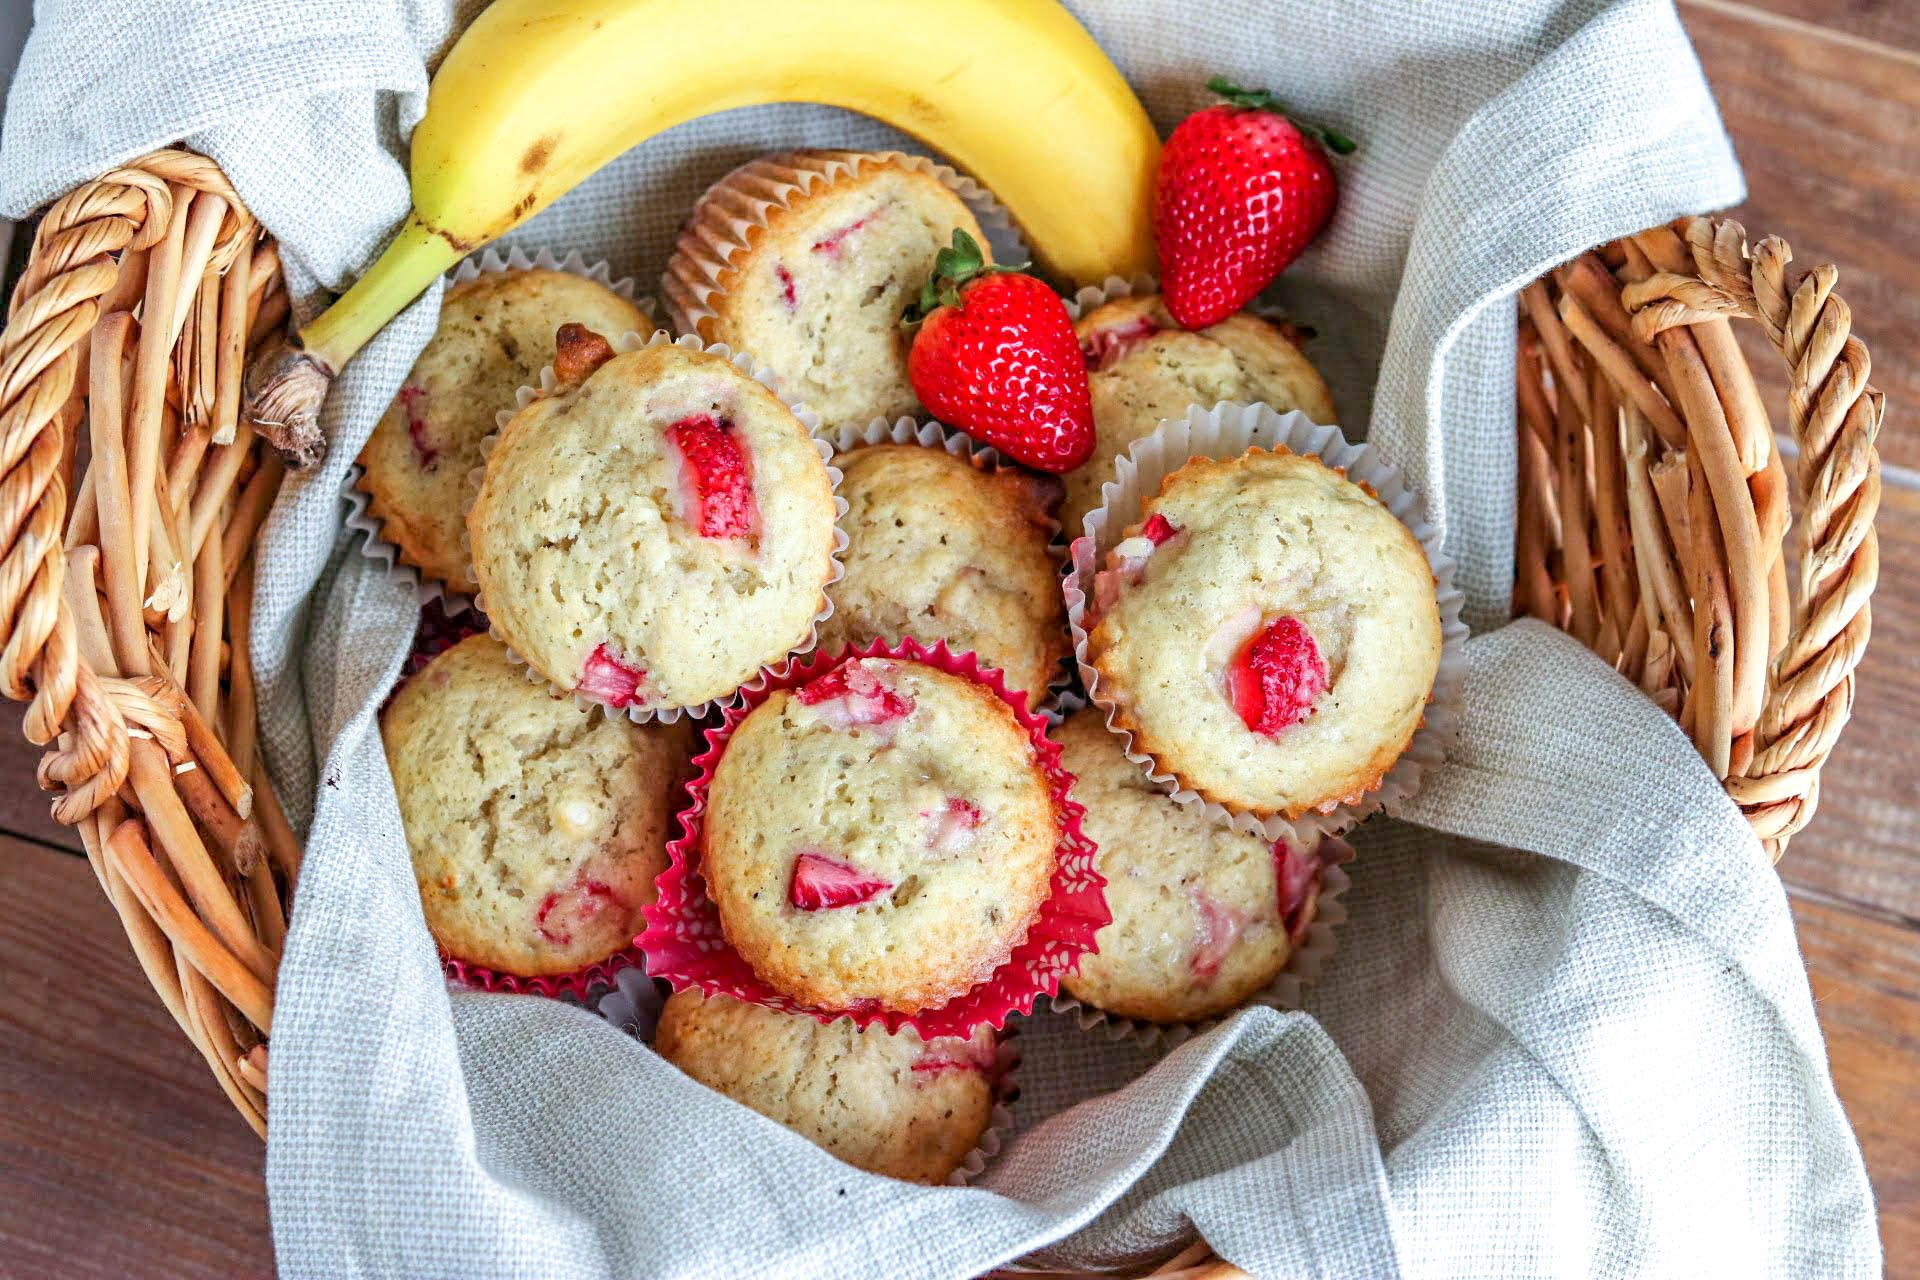 Fresh strawberry banana muffins with strawberries and banana in wicker basket lined with blue towel on wooden table.